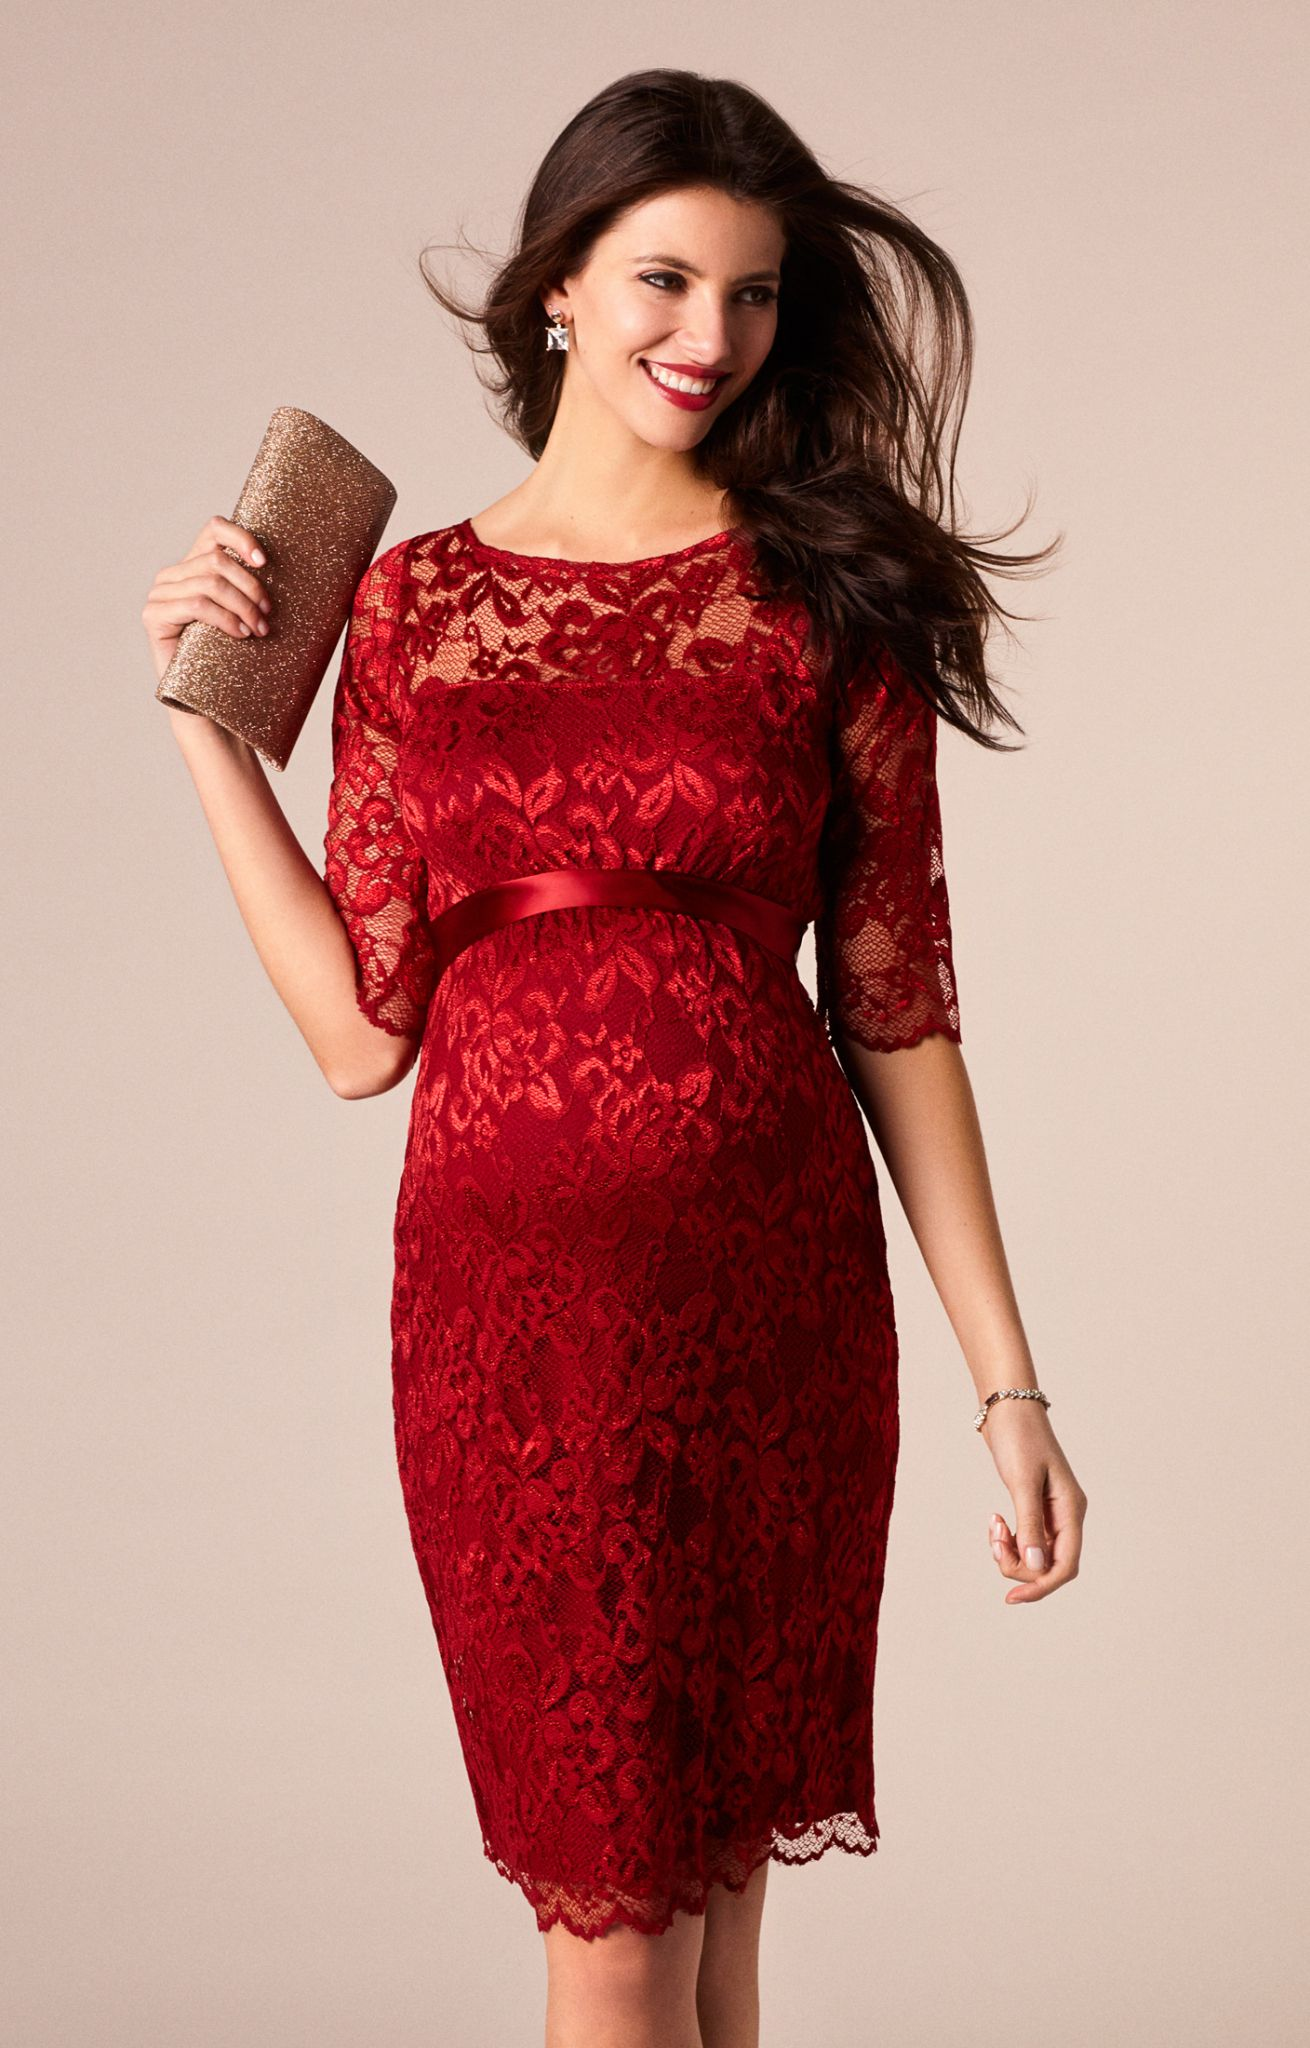 Red Maternity Wedding Dresses For Fall Check More At Http